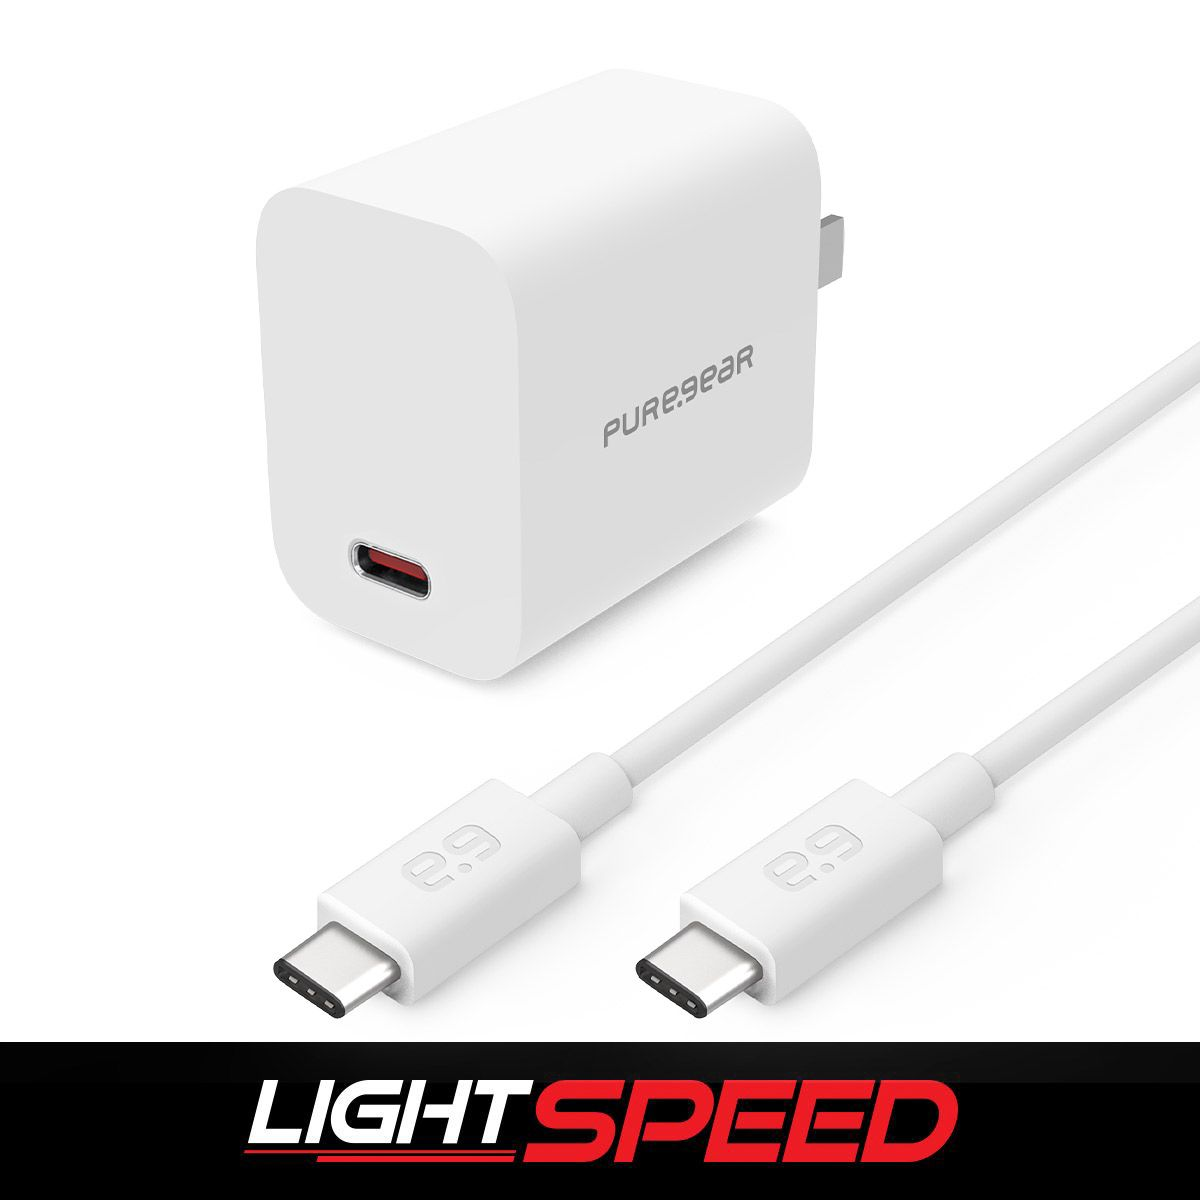 LightSpeed - 20W Single USB-C PD Wall Charger - White